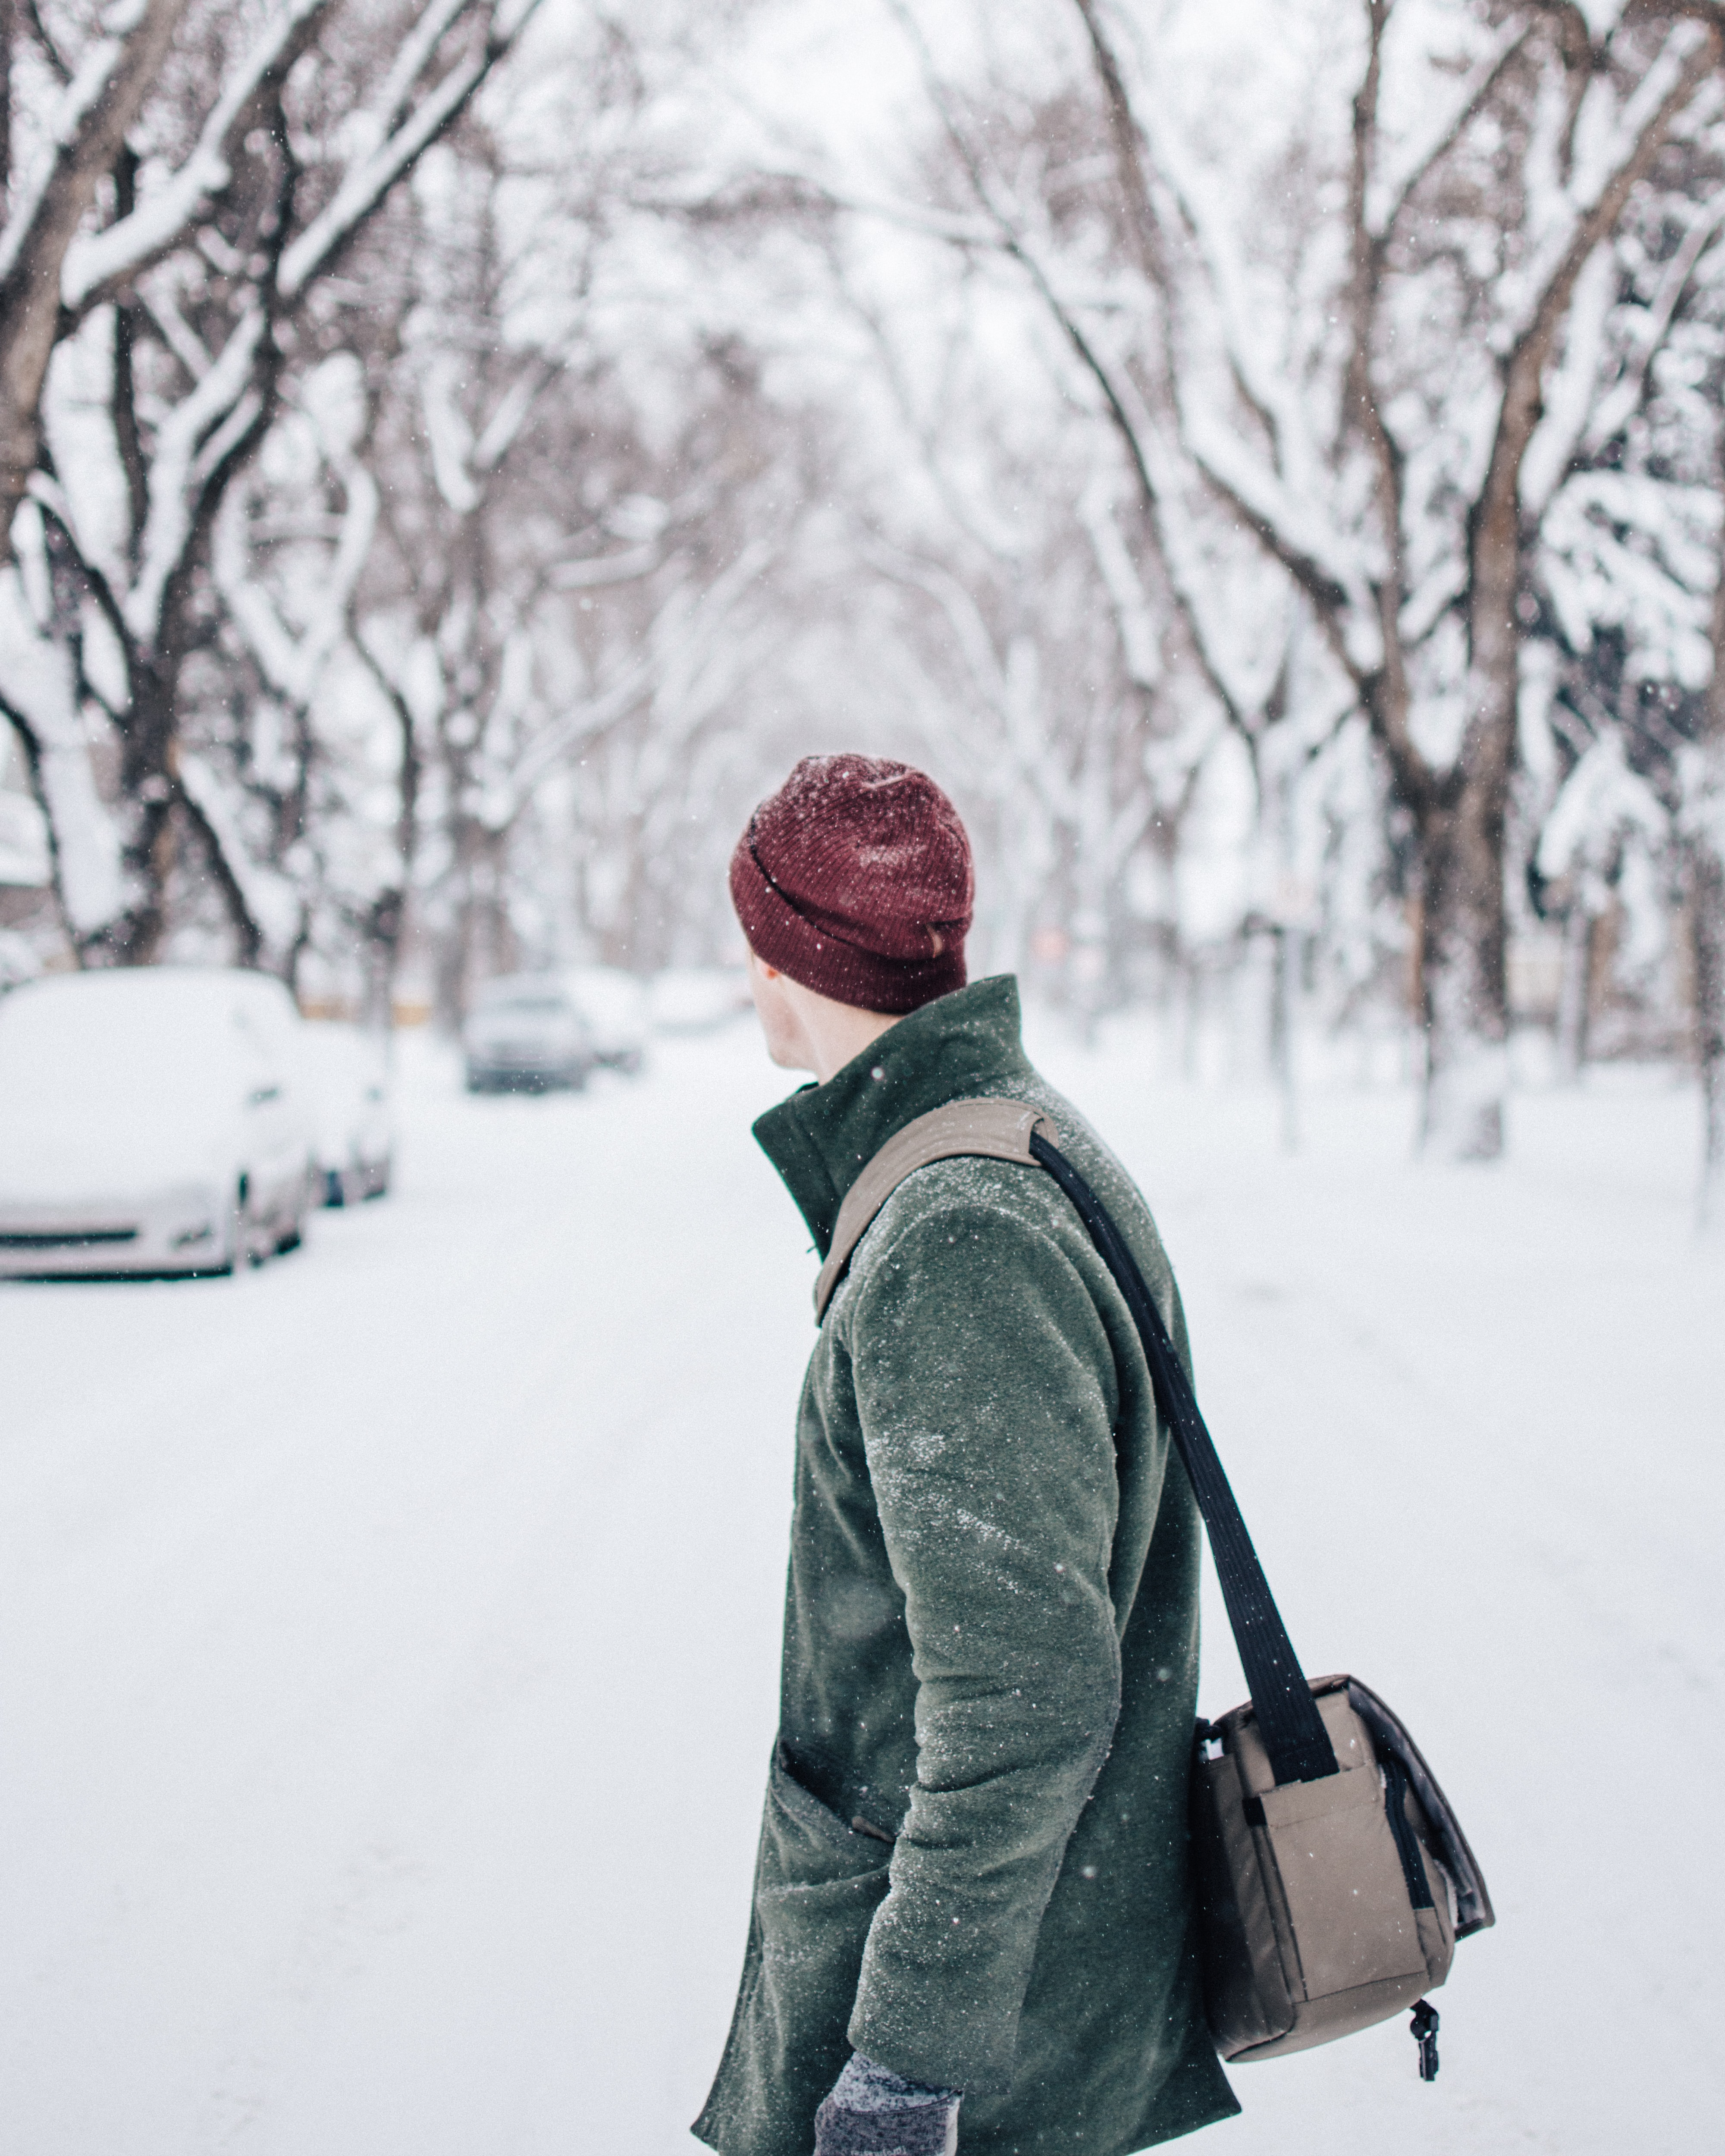 selective focus photography of man wearing coat and beanie standing watching vehicle on road